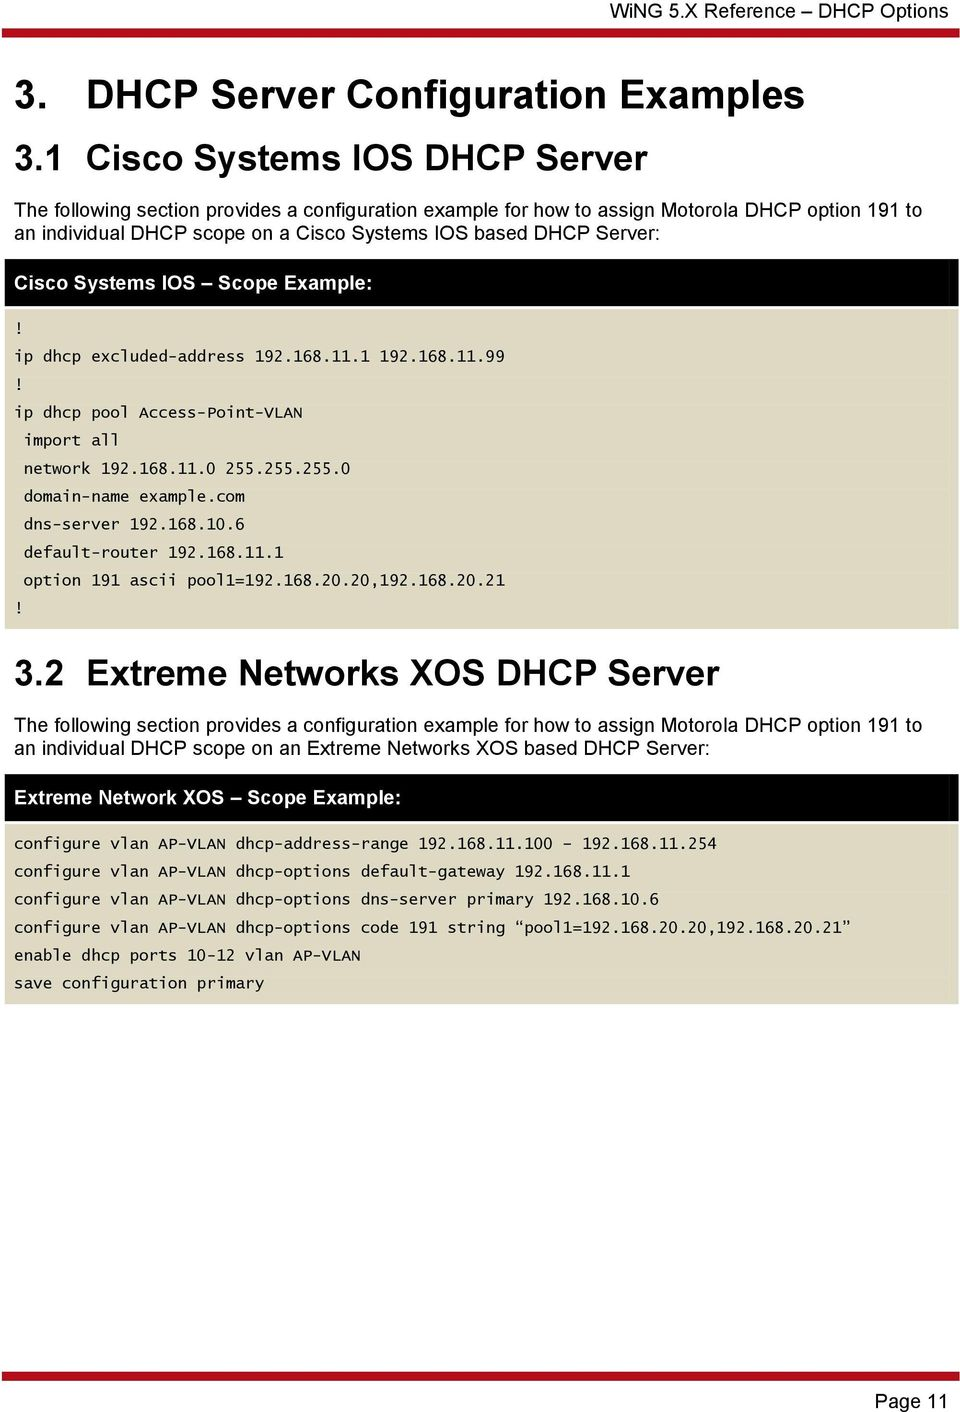 WiNG 5 X Reference  DHCP Options  Part No  TME REV A - PDF